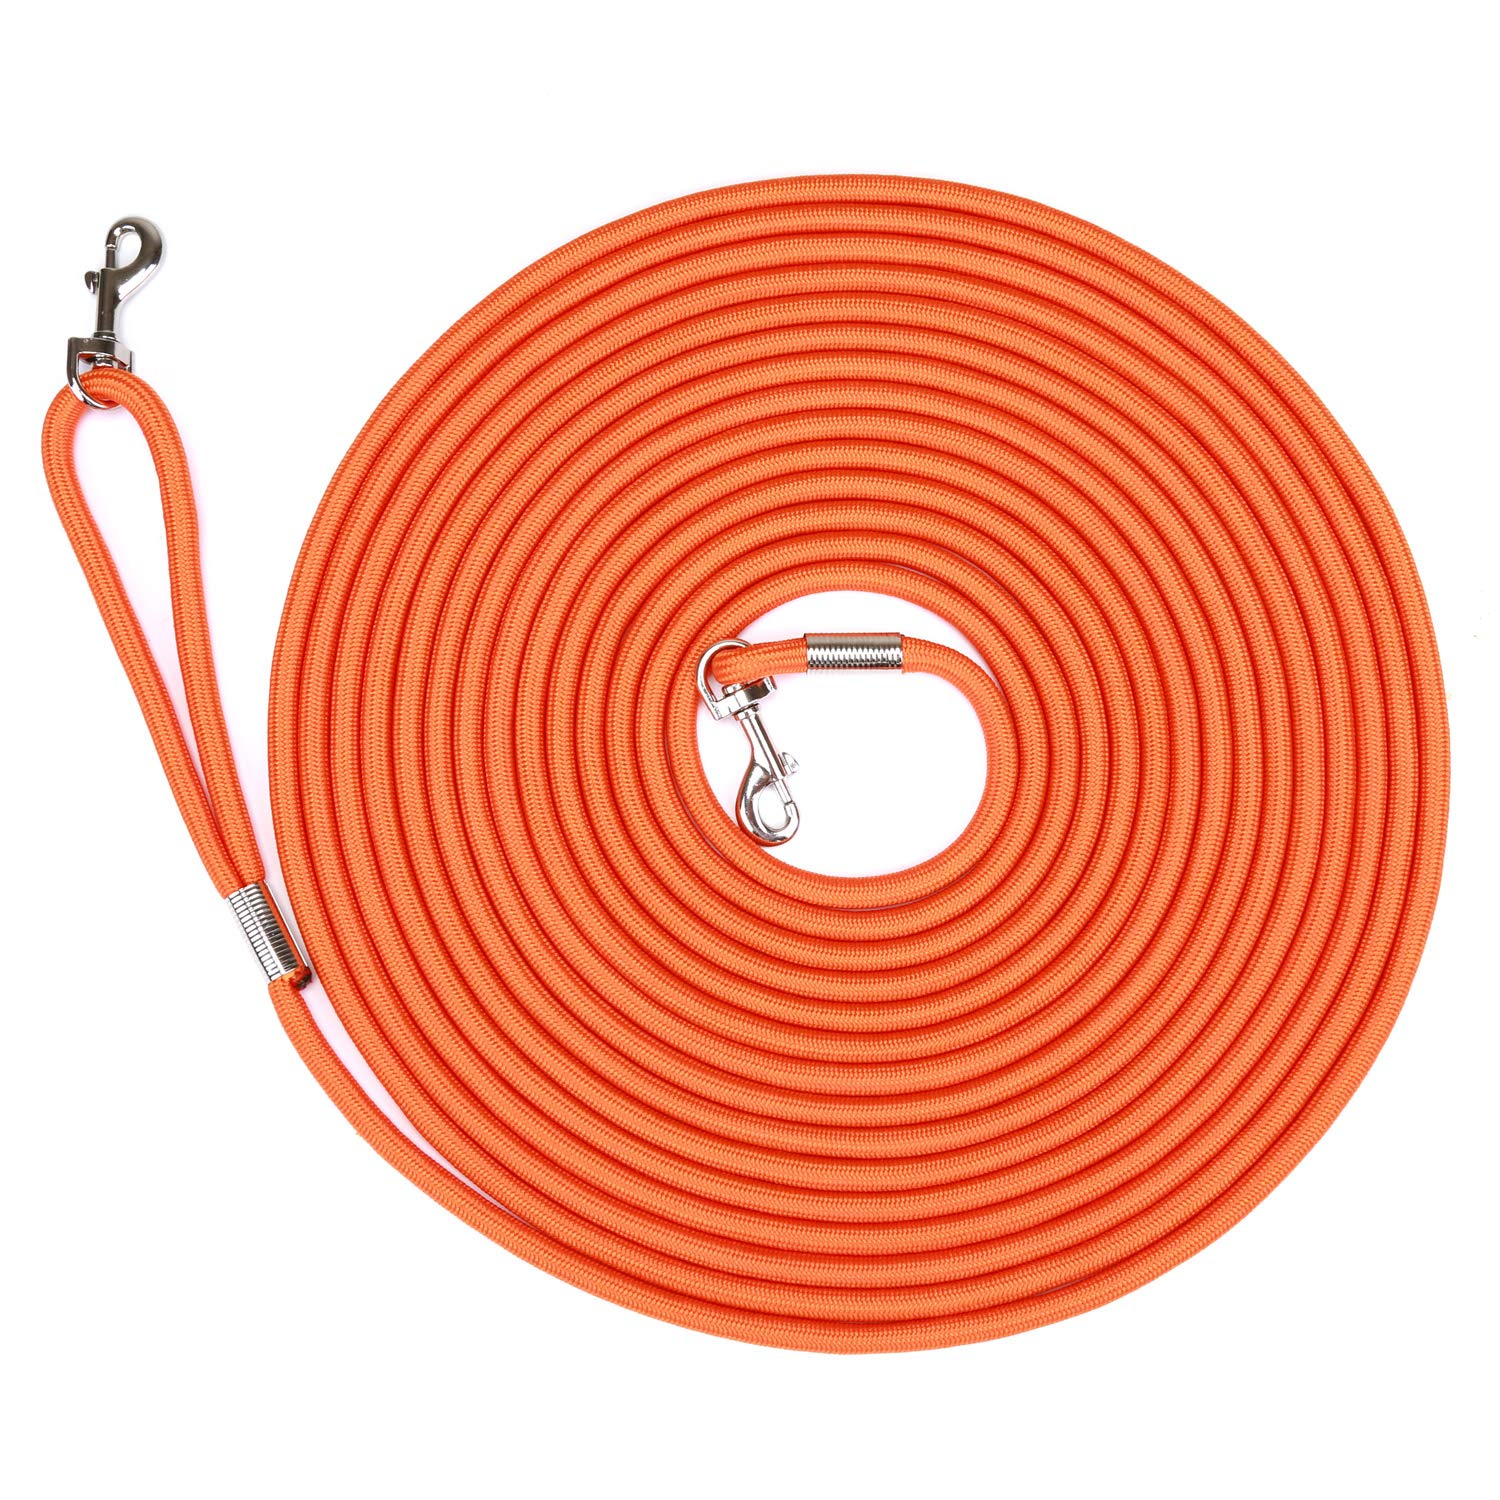 HIKISS Tranining Dog Leash Orange 30 Feet by Hi Kiss